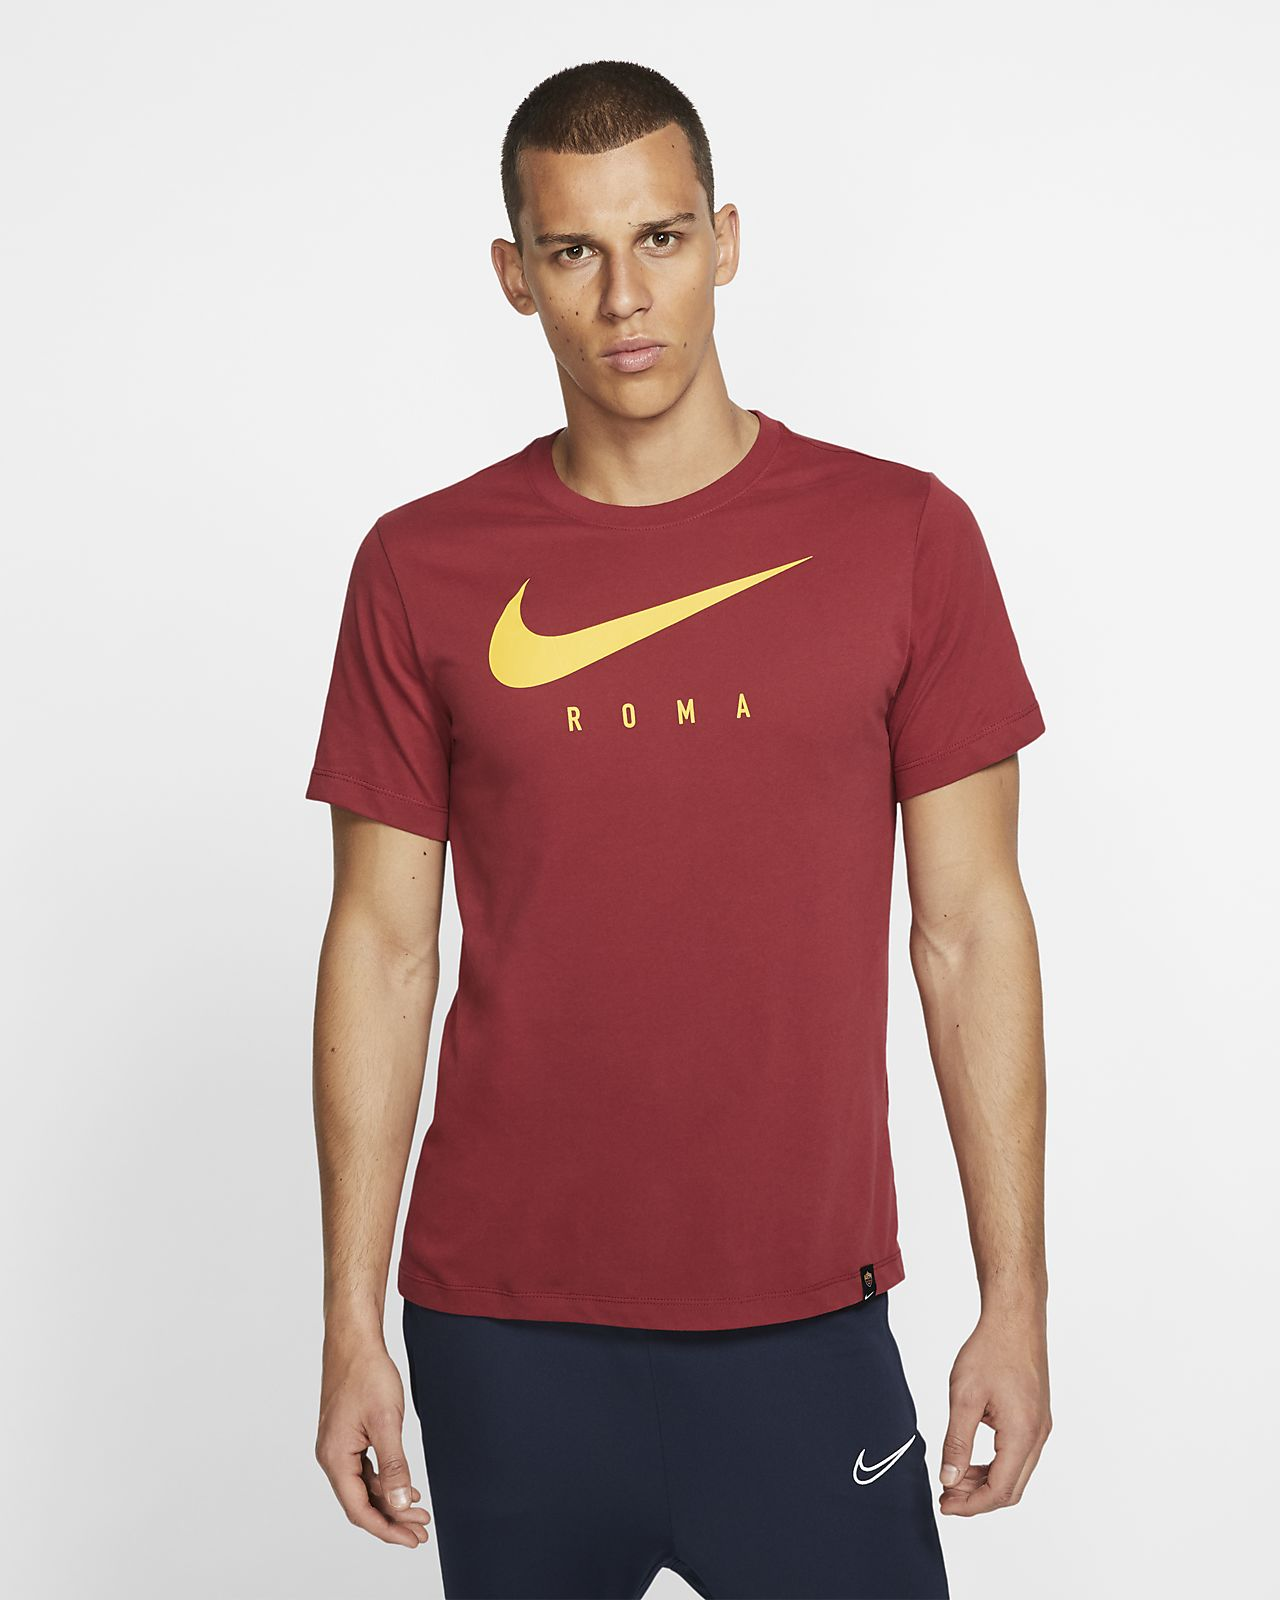 Nike Dri-FIT A.S. Roma Men's Football T-Shirt